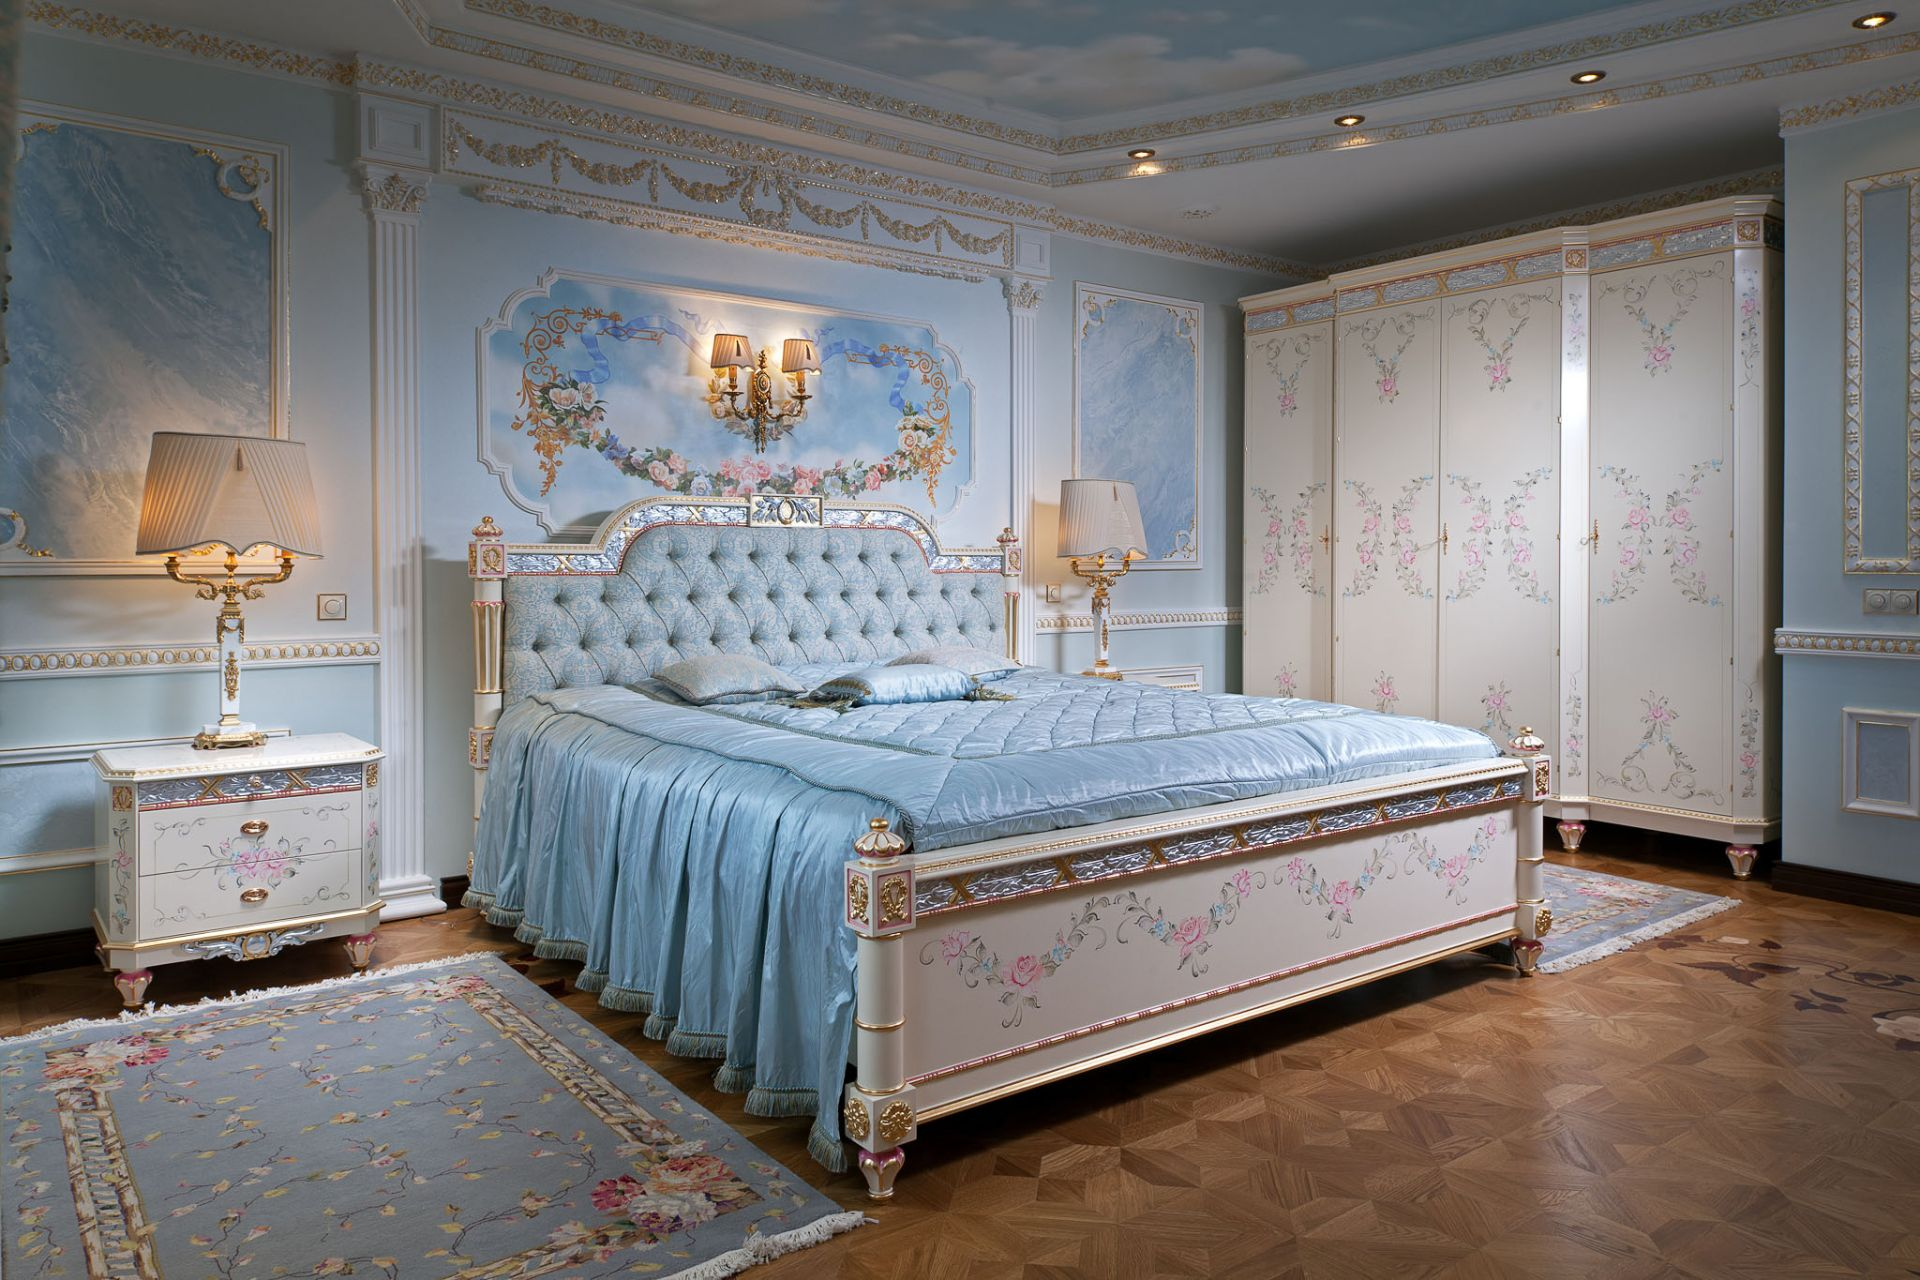 Bedroom Malvina in azure tones